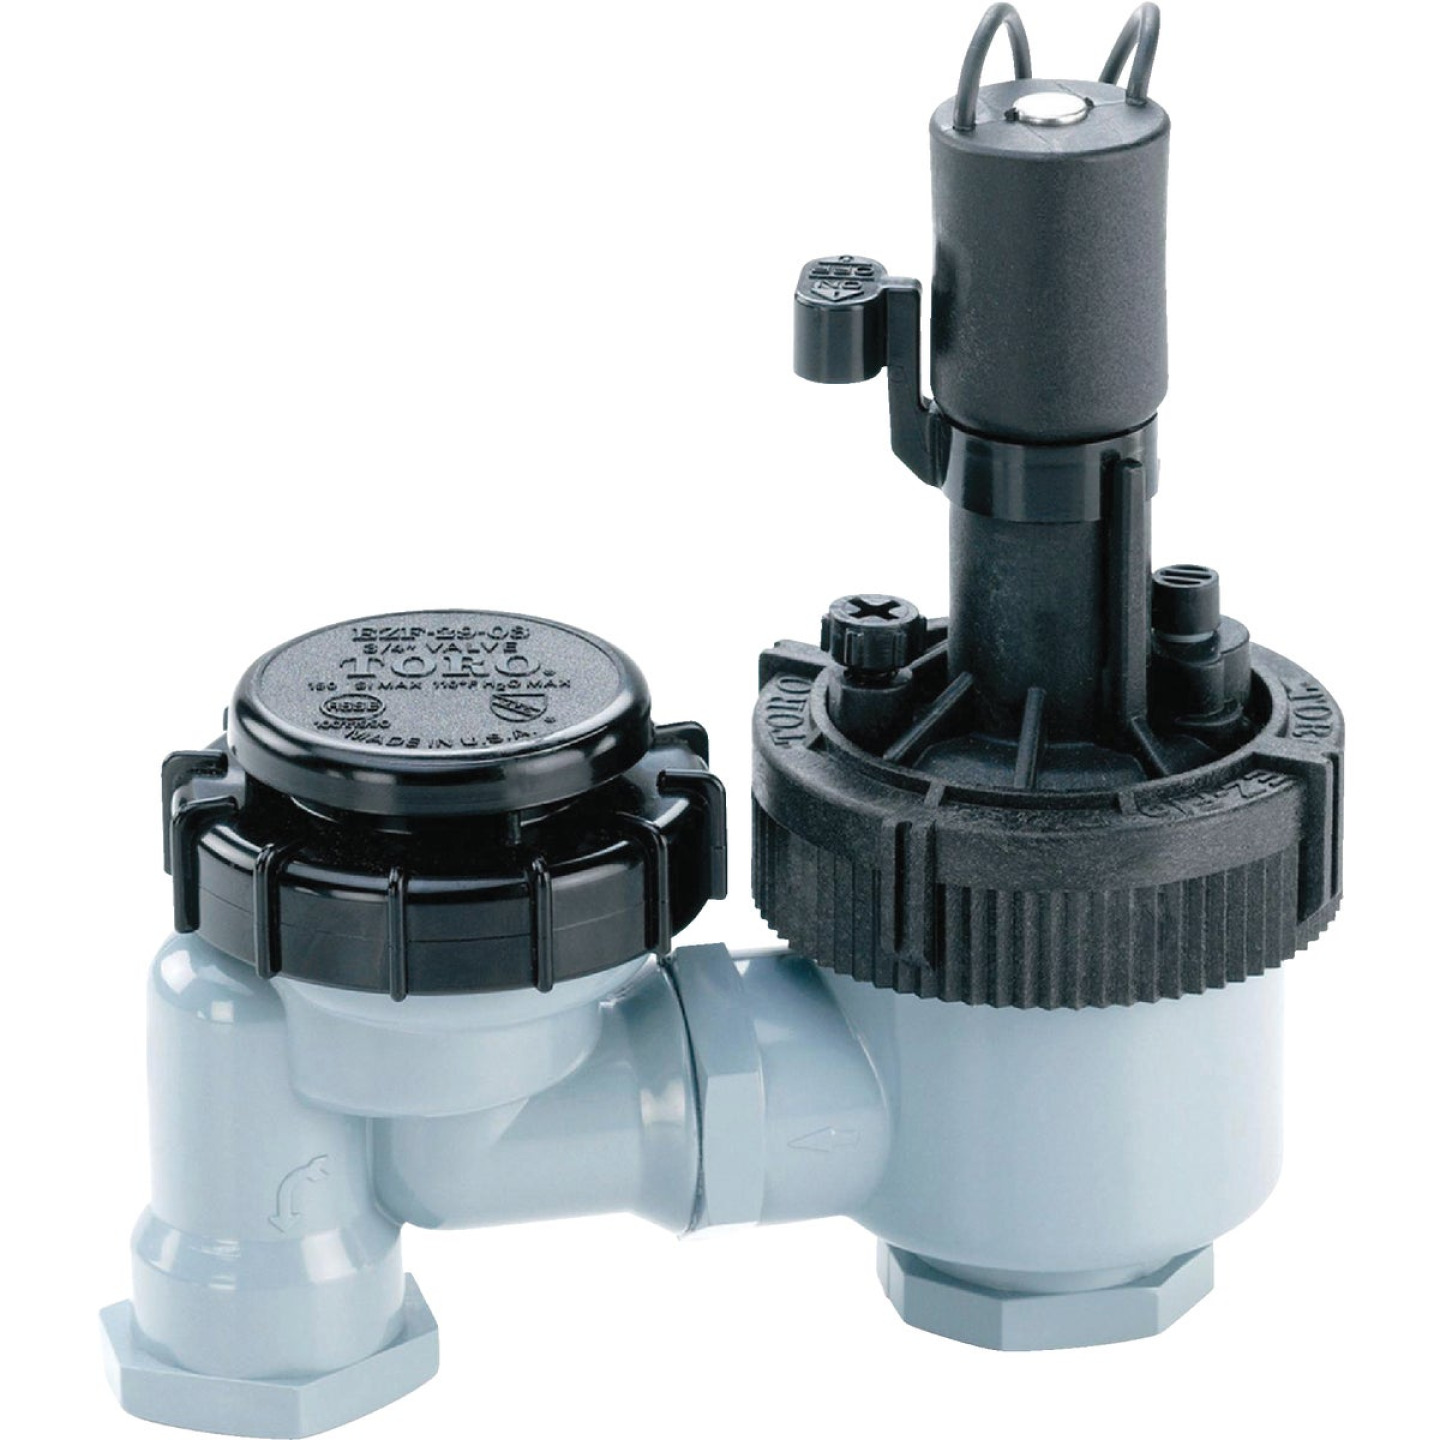 Toro 3/4 In. 150 psi Automatic Anti-Siphon Valve Image 1